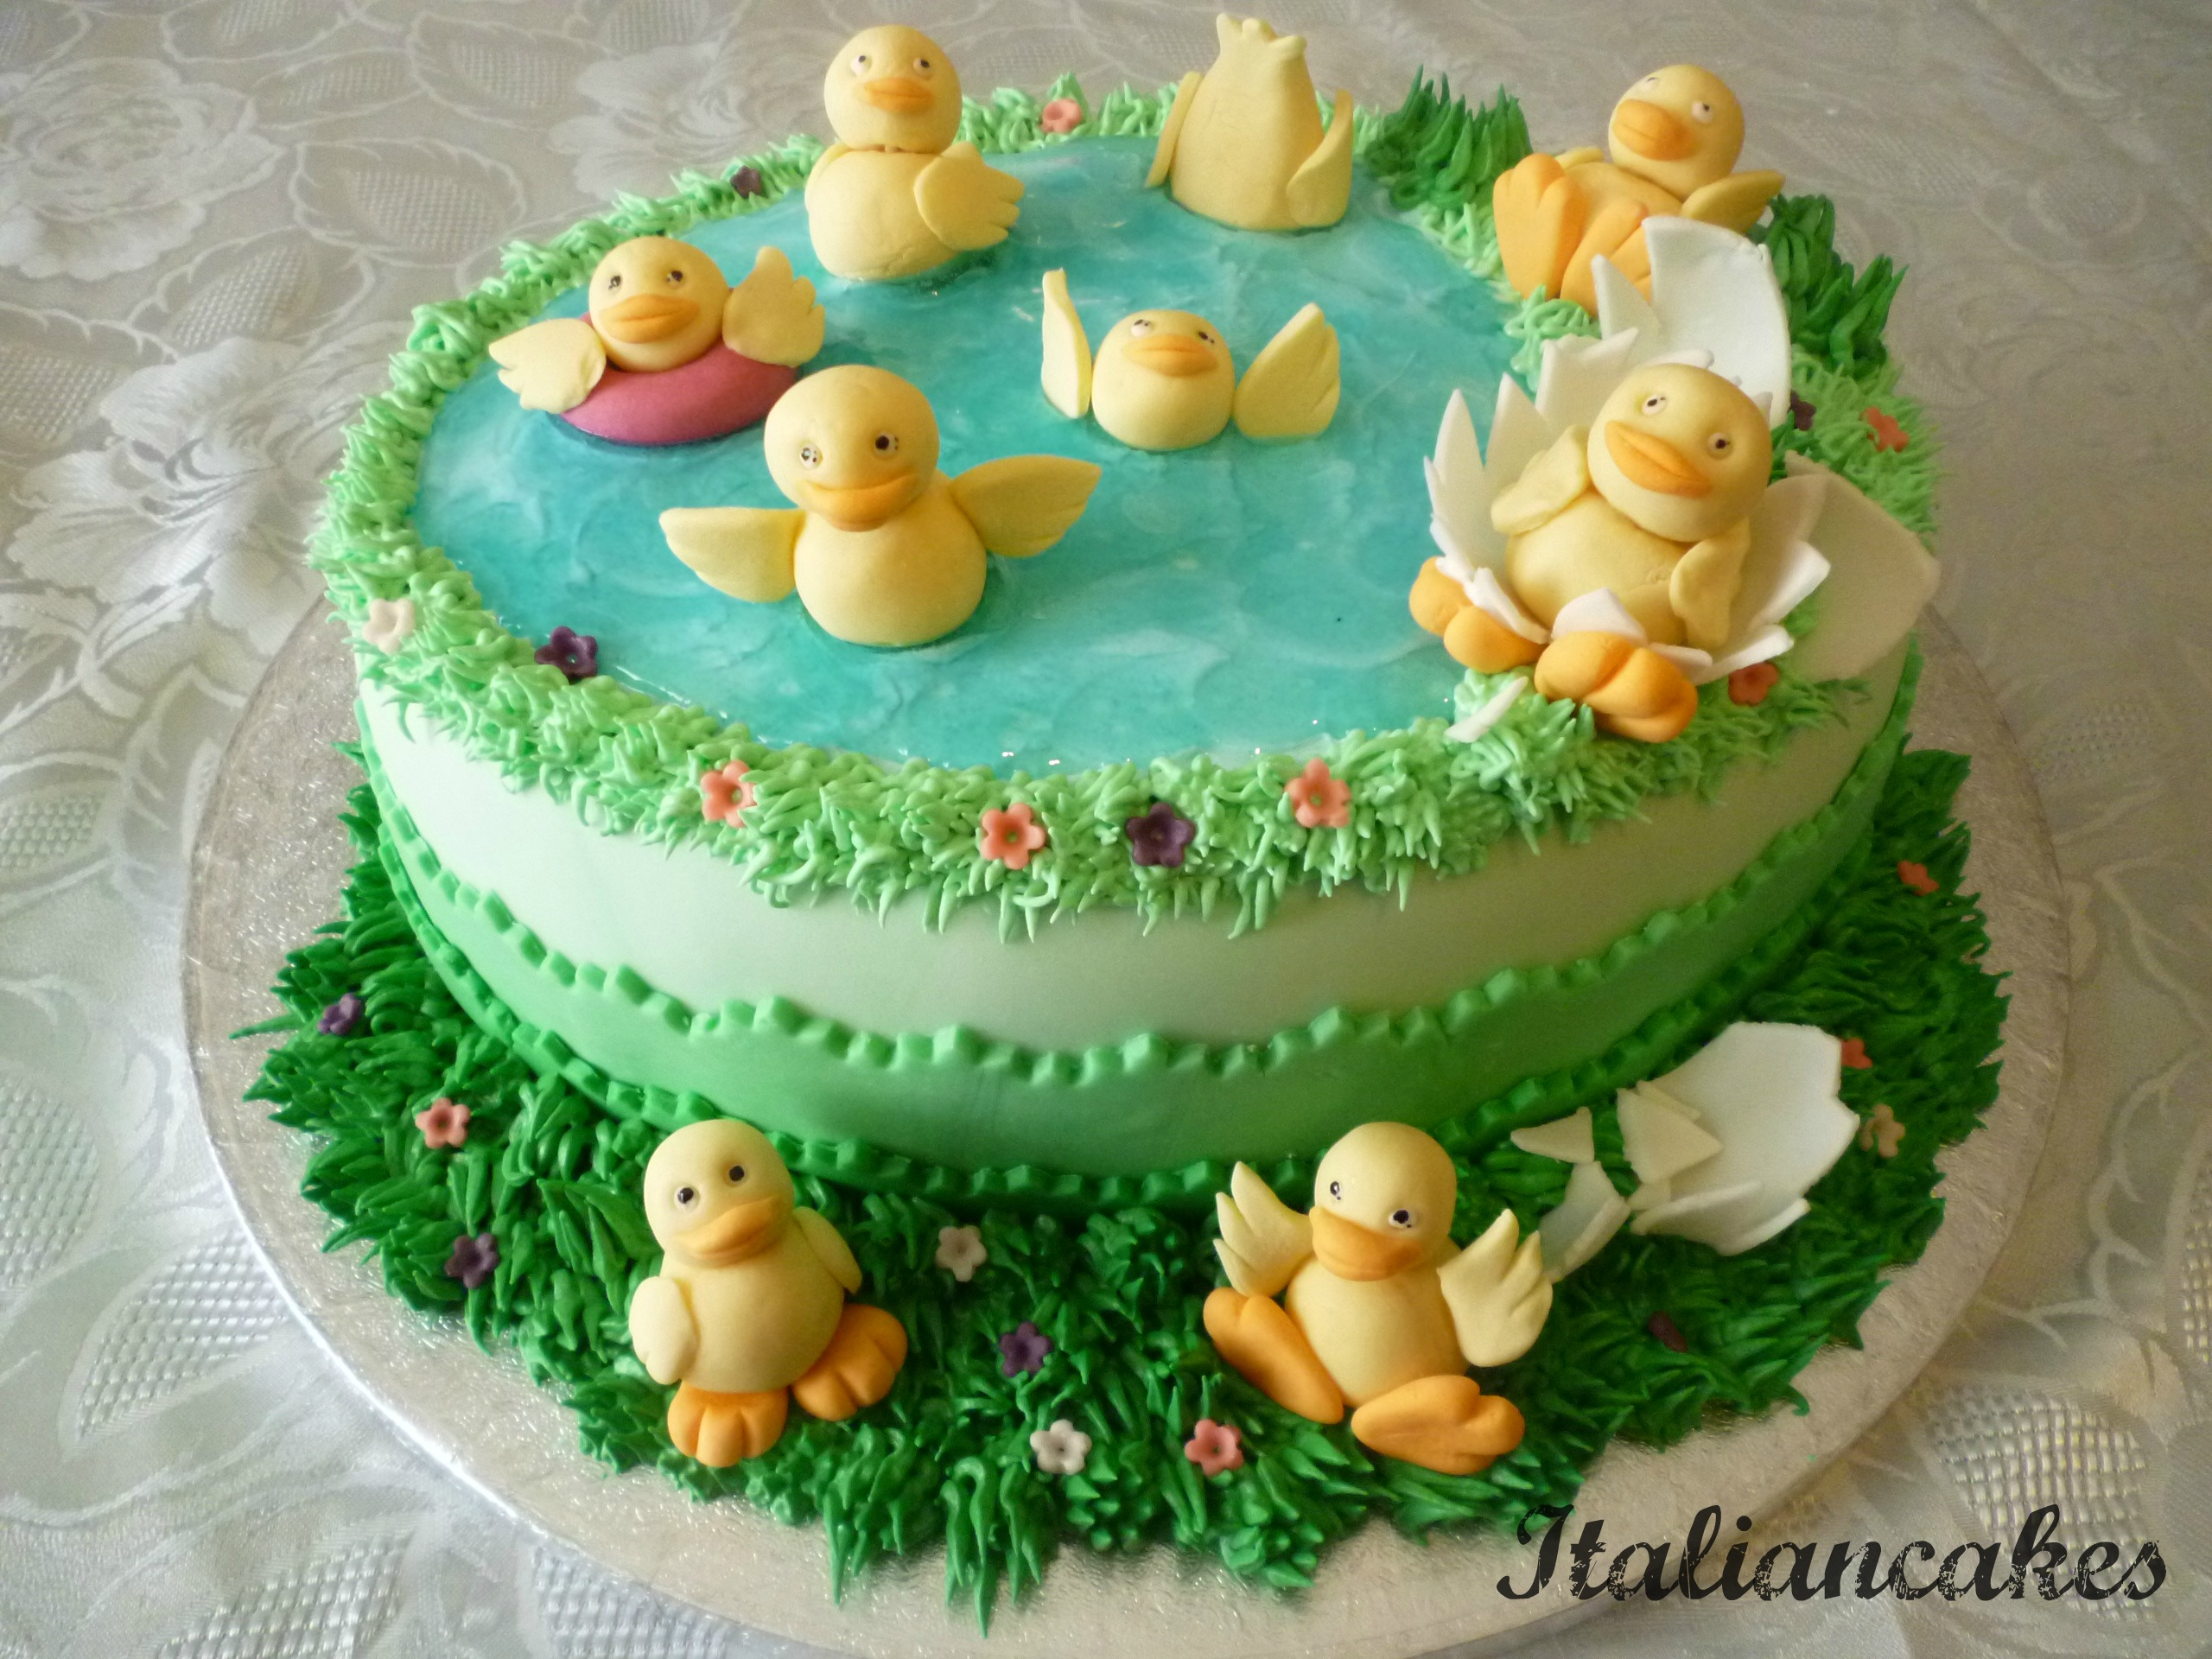 Awesome Decorate A Birthday Cake With Ducks Italiancakes Usa Funny Birthday Cards Online Alyptdamsfinfo